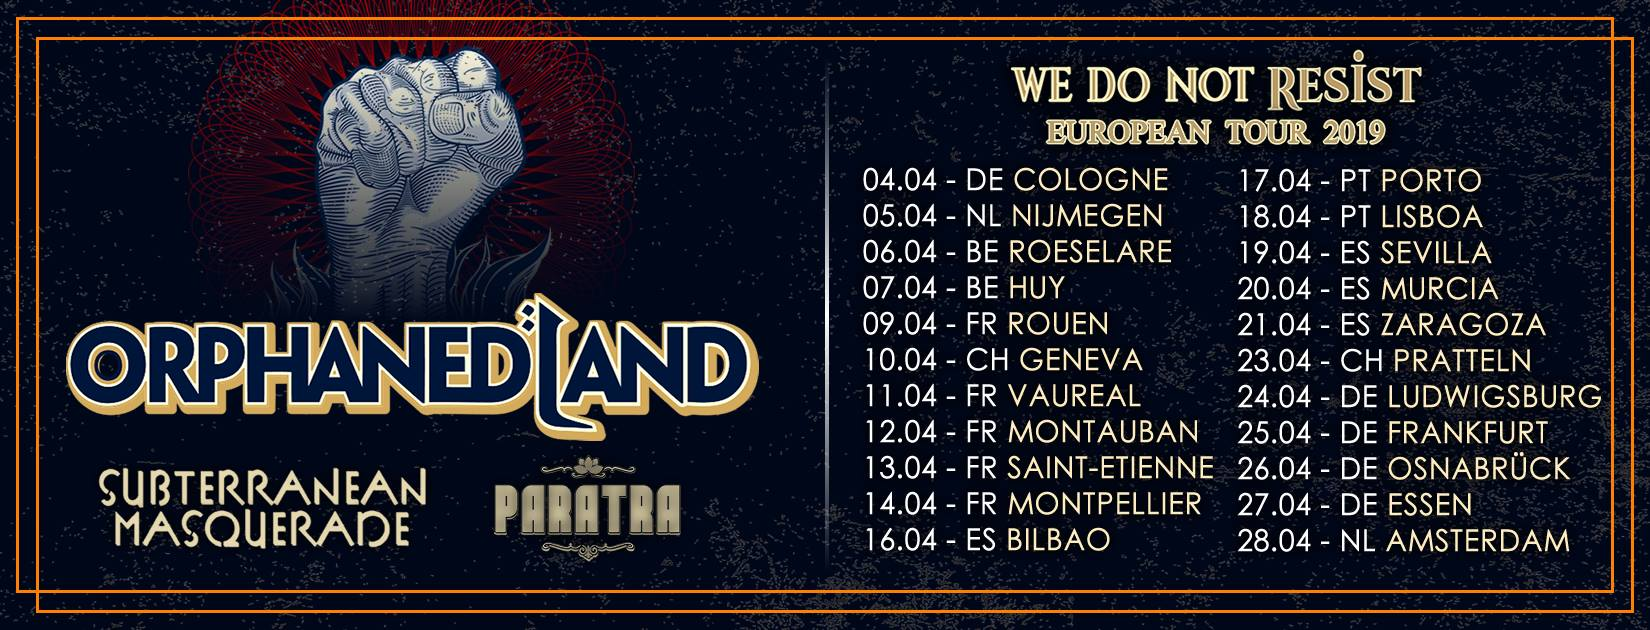 Orphaned Land - avril 2019 42645910